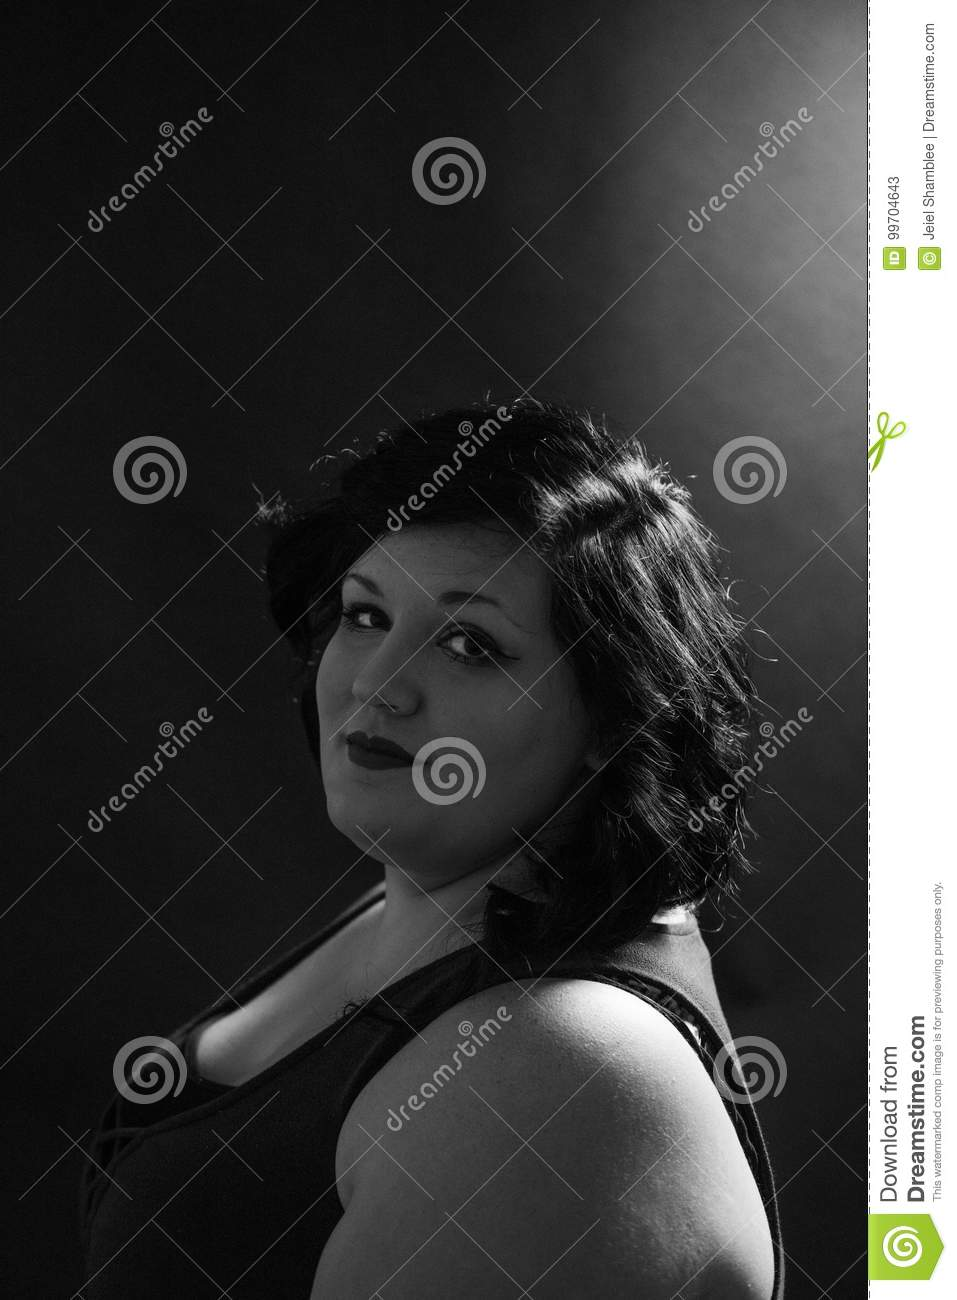 Black White Portrait Of Smiling Young Woman With Dark Highlights